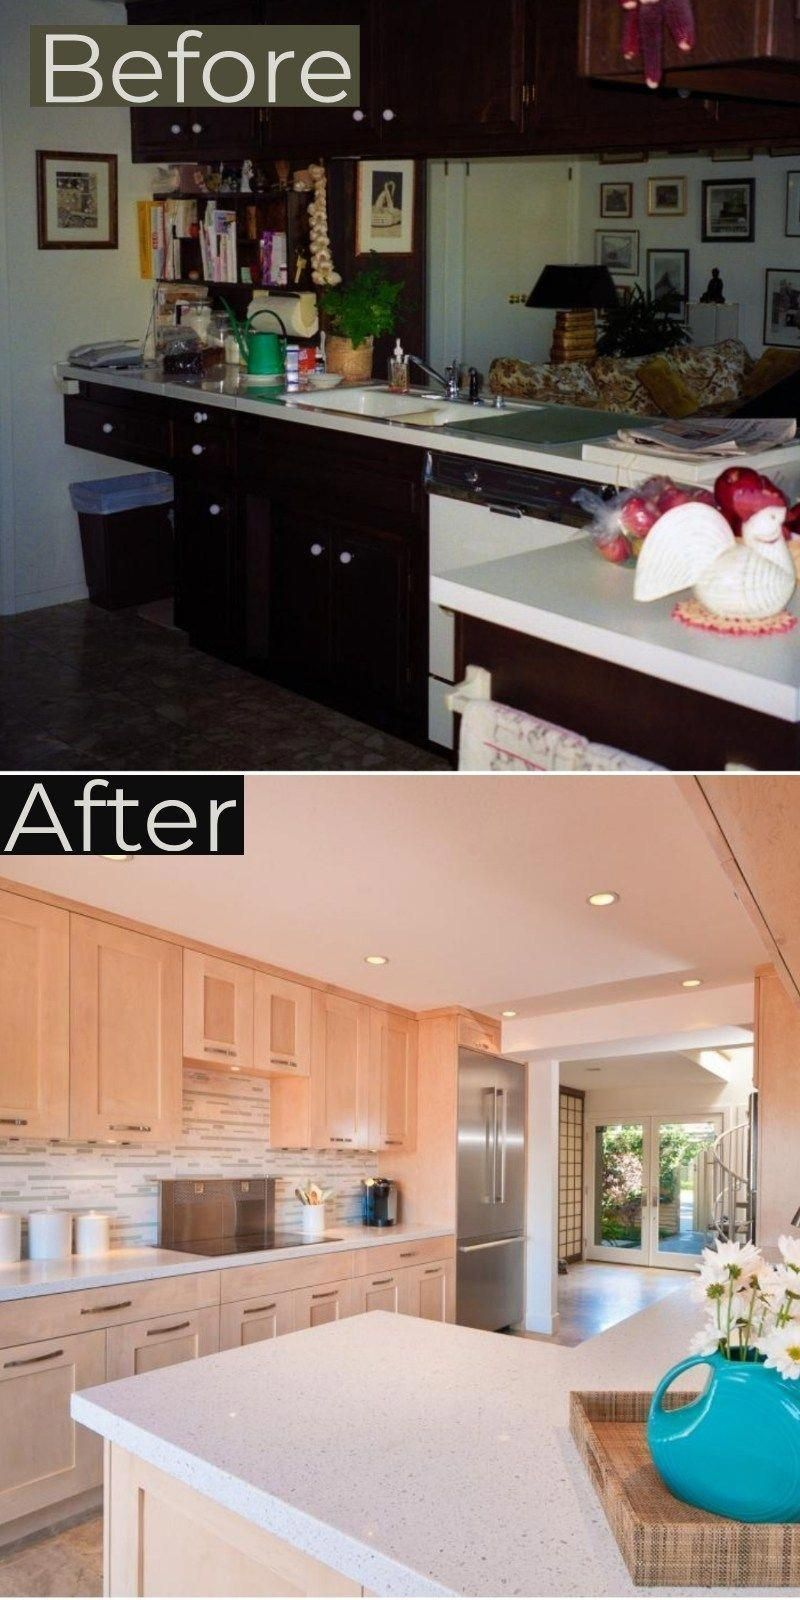 galley kitchen remodel before and after ideas 2019 trends onabudget small bef after bef on how to remodel your kitchen id=83597